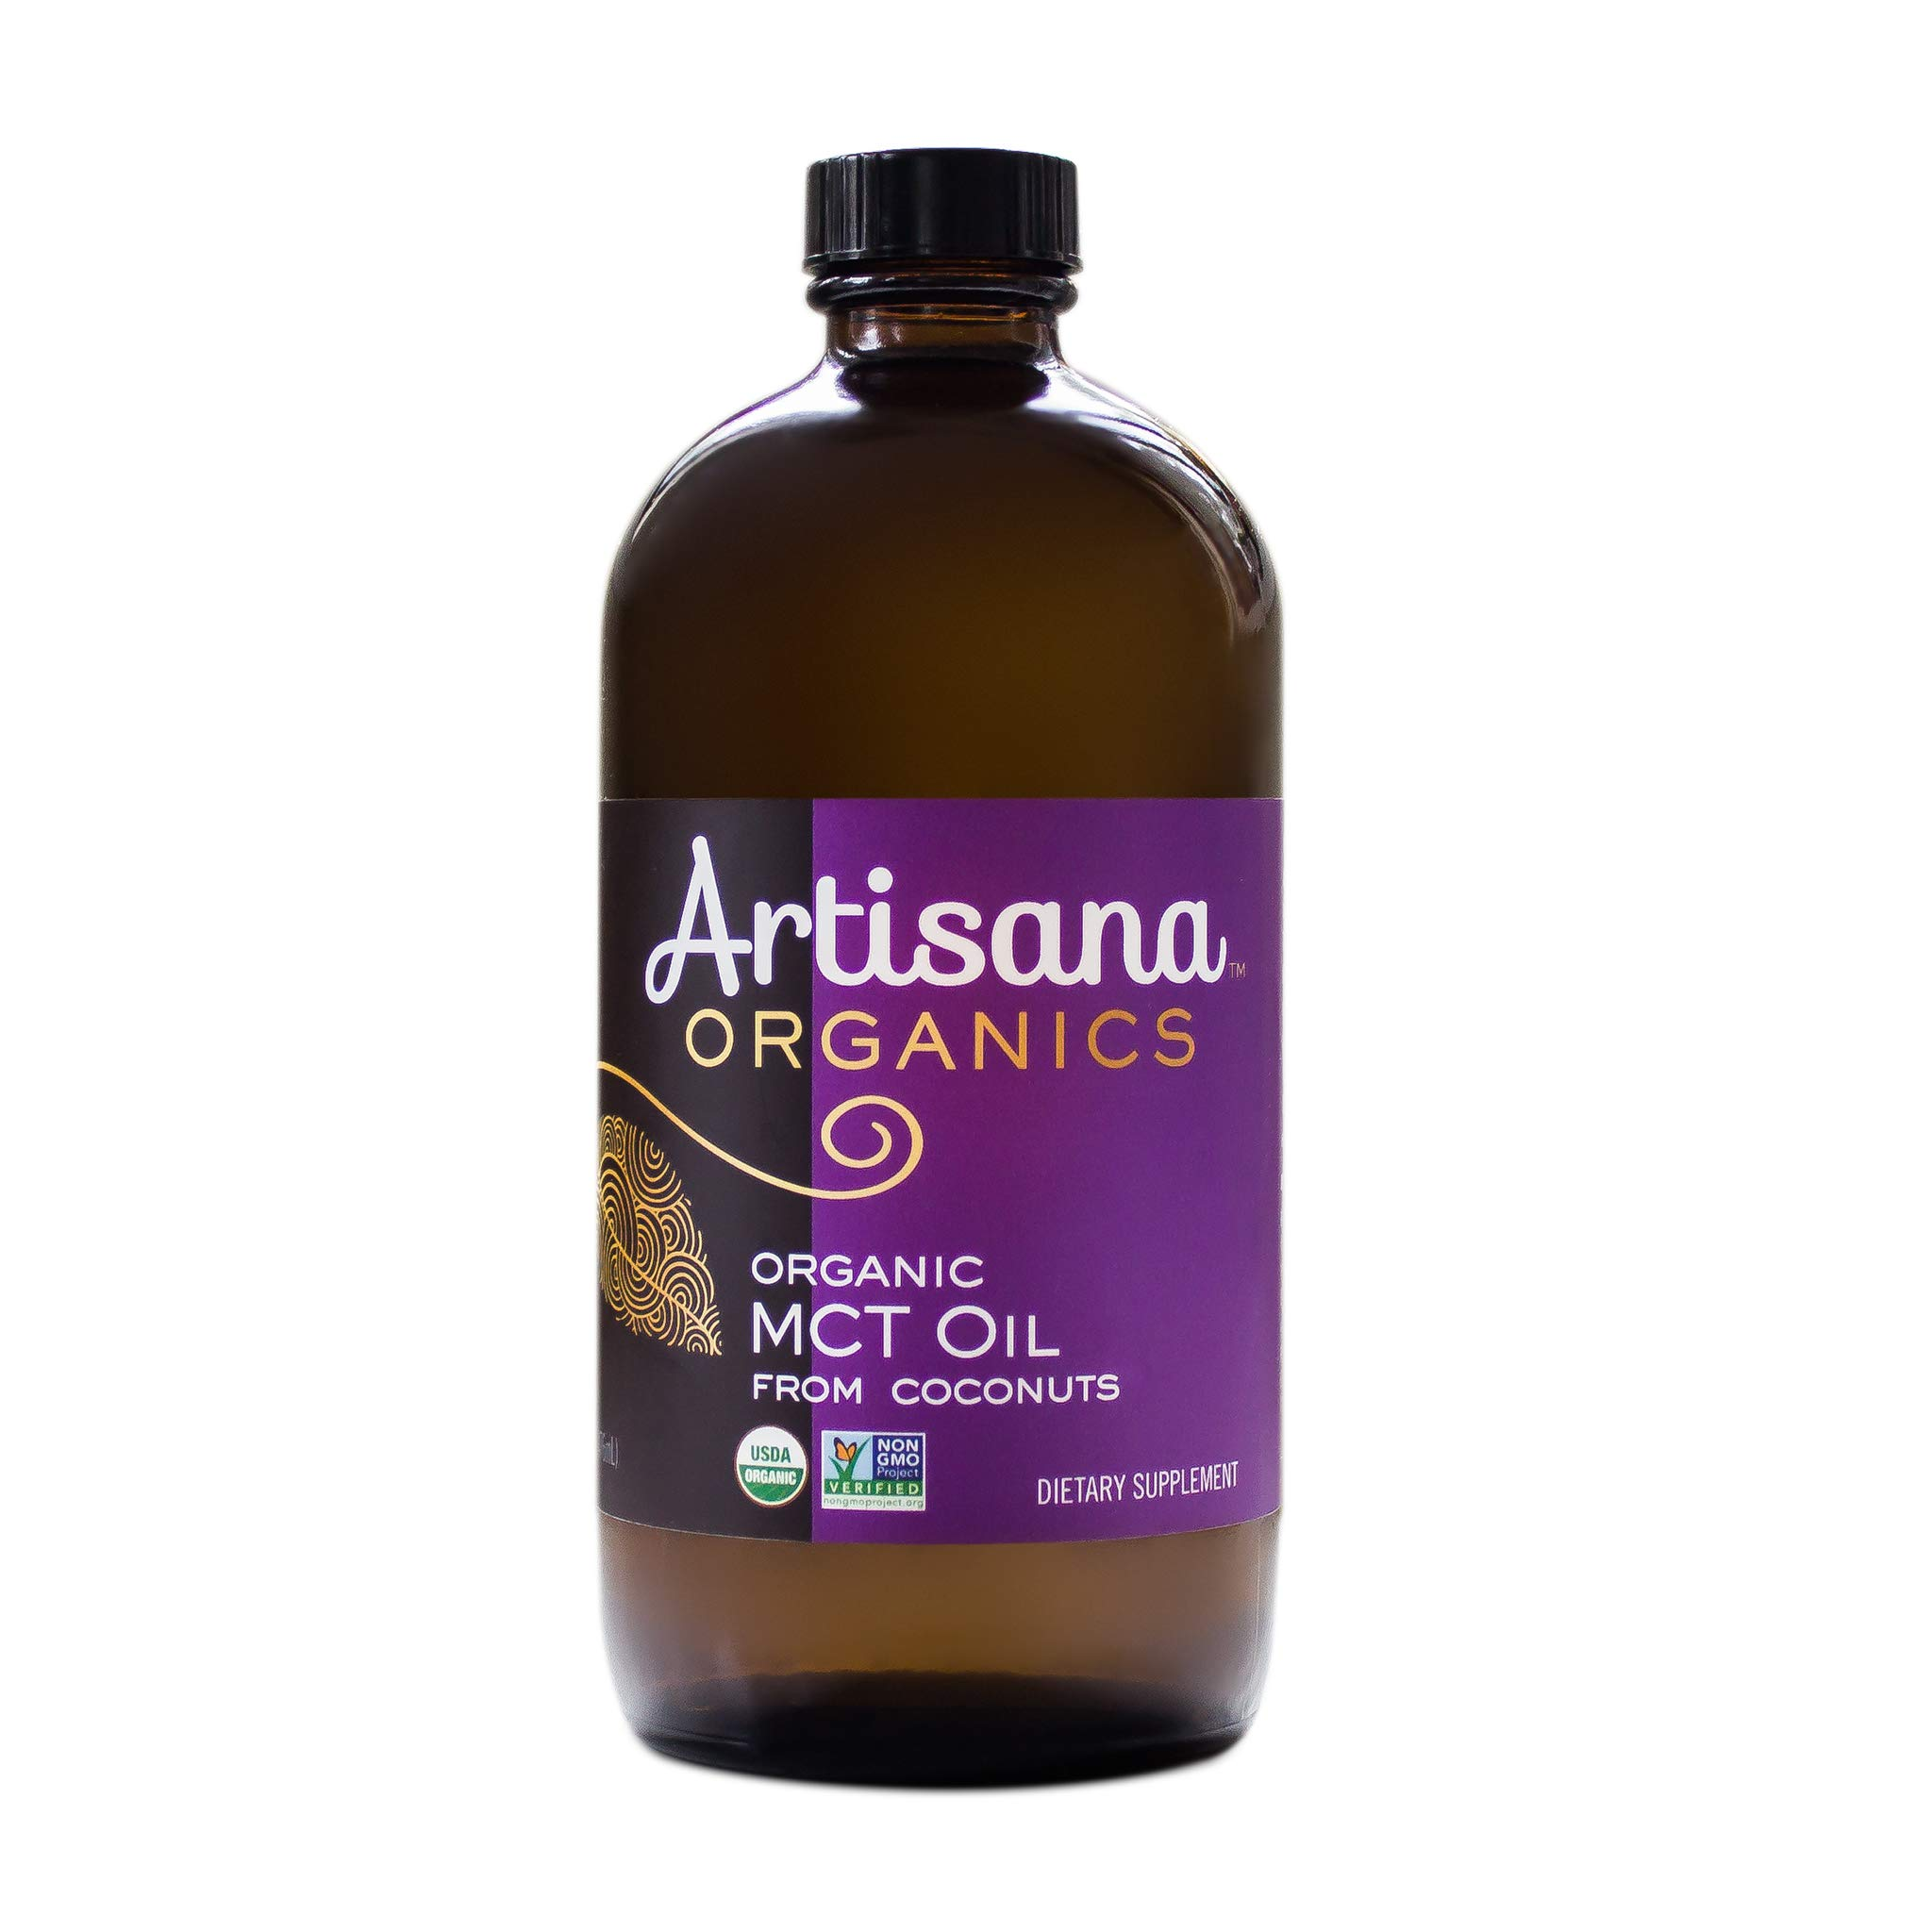 Artisana Organics MCT Oil from Coconuts in Glass Bottle, USDA Certified Organic MCT Oil (1, 16.1 fl oz bottle)